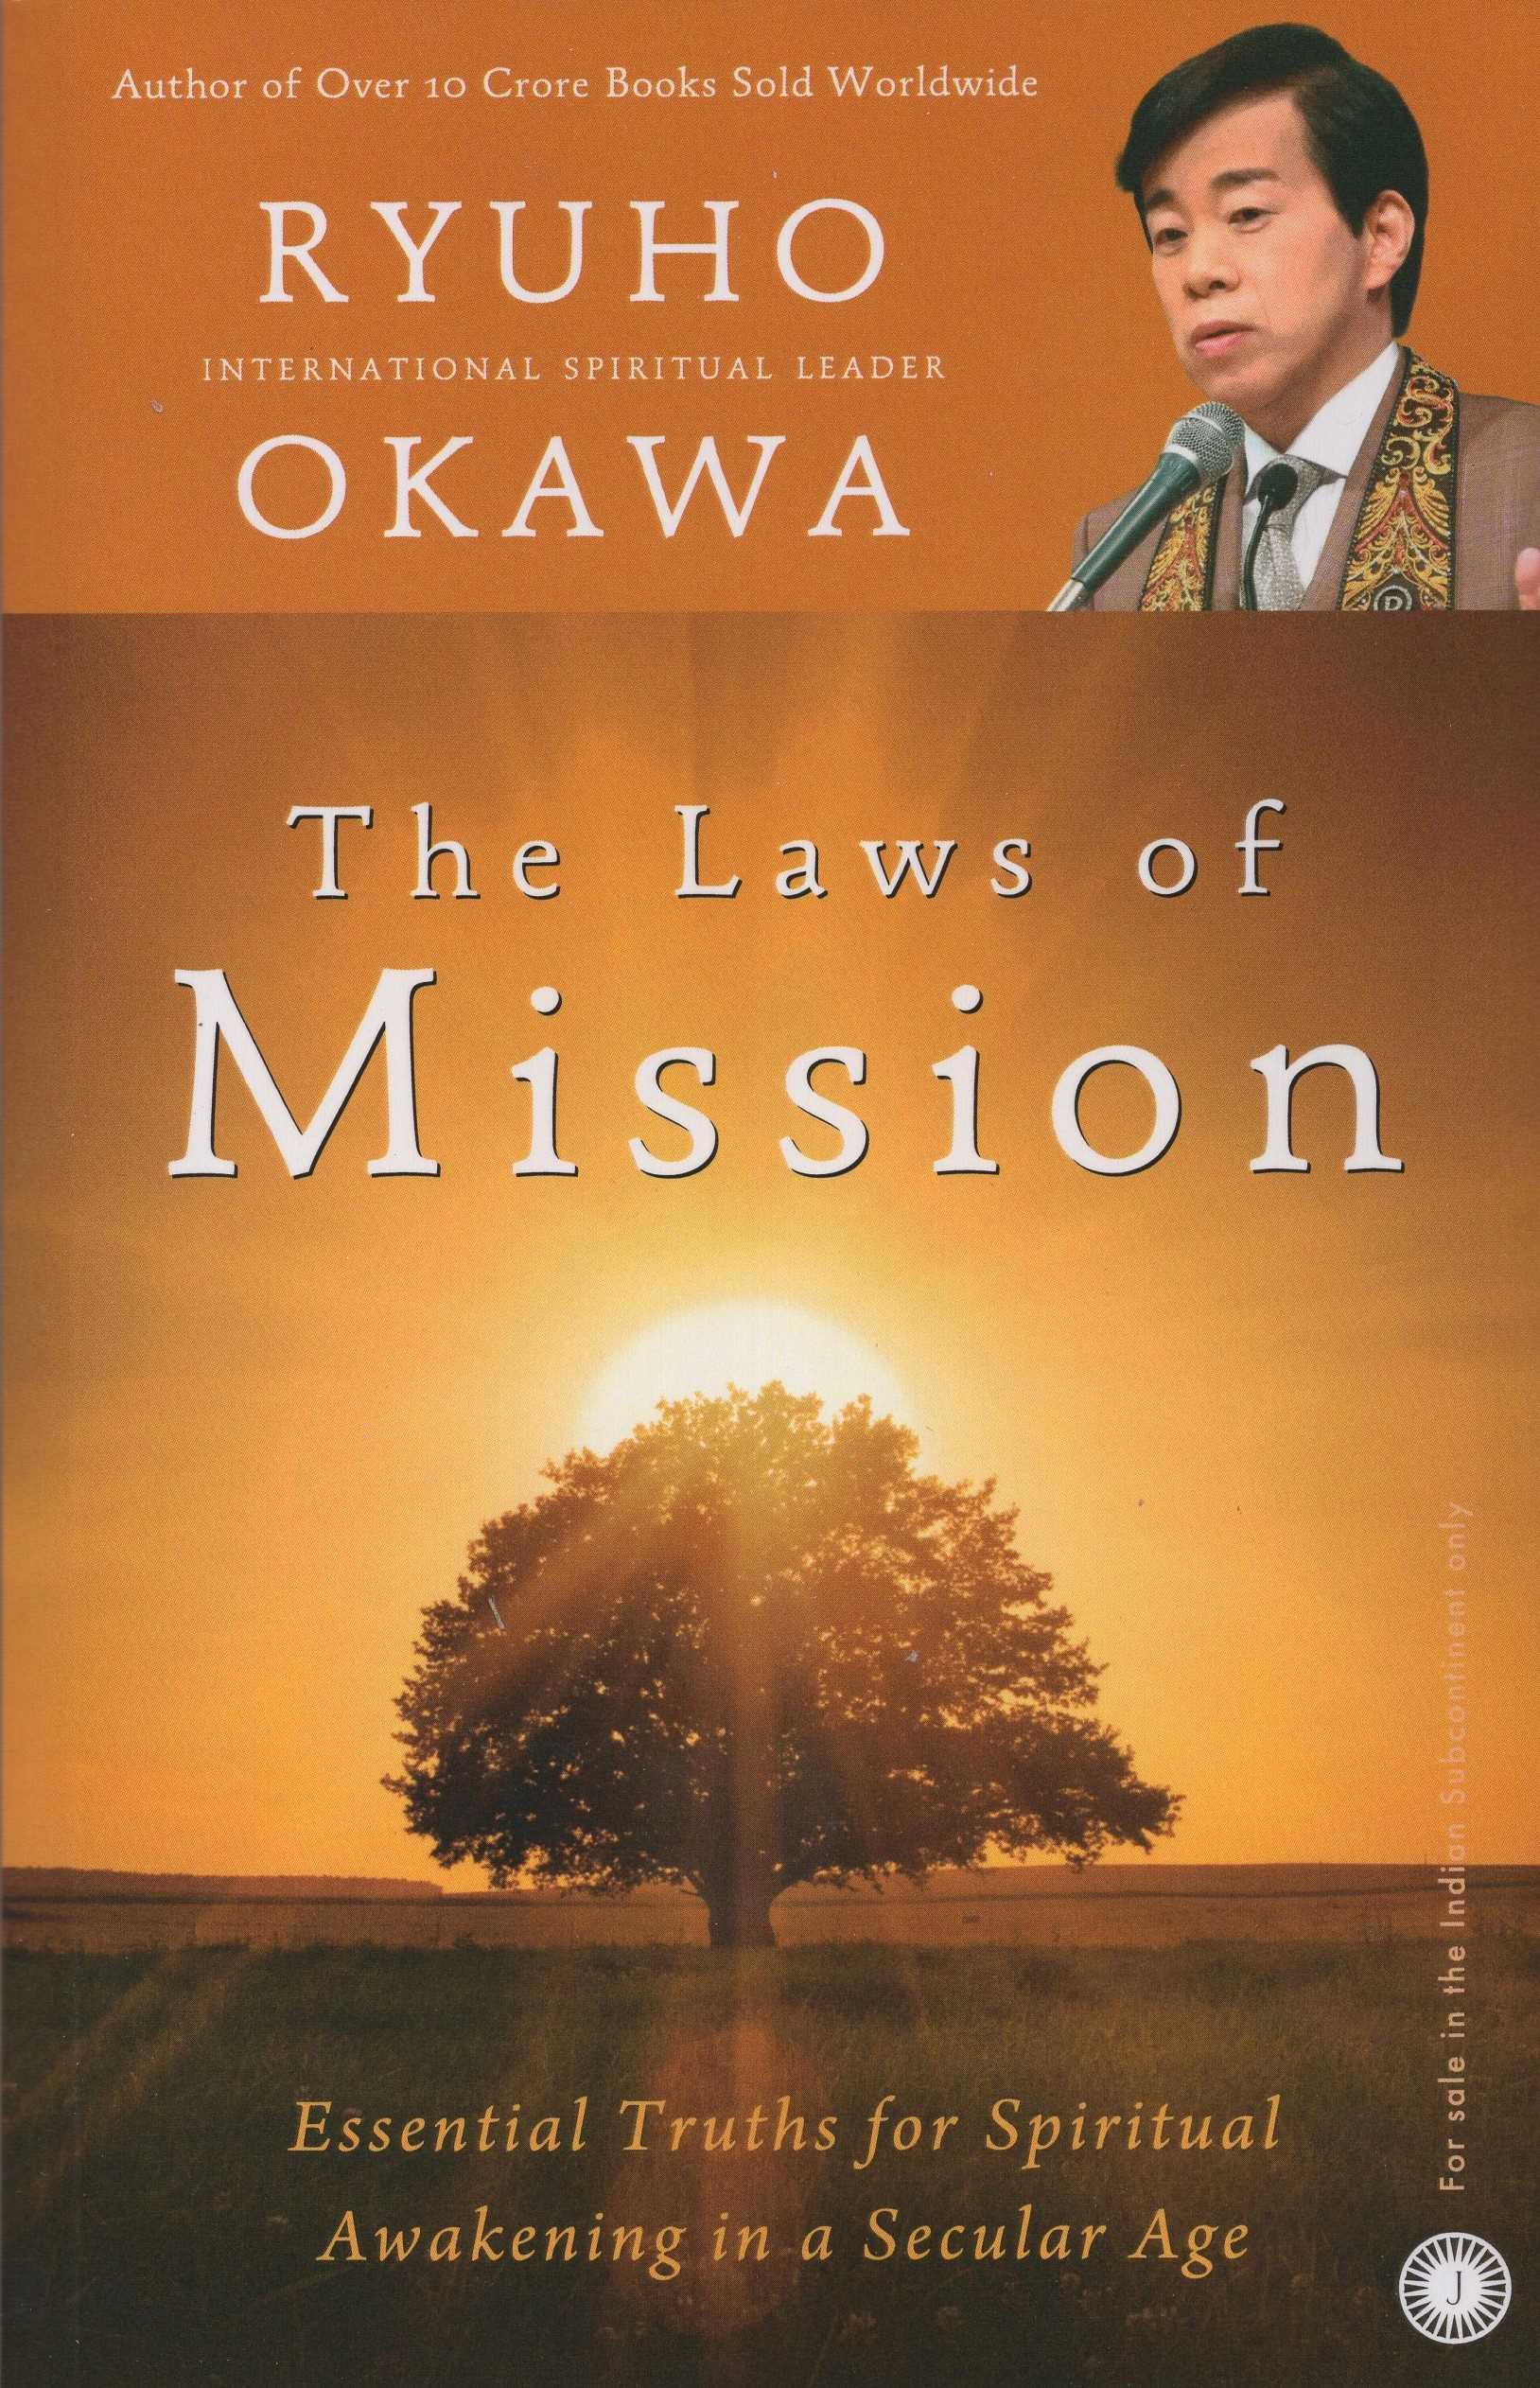 THE LAWS OF MISSION